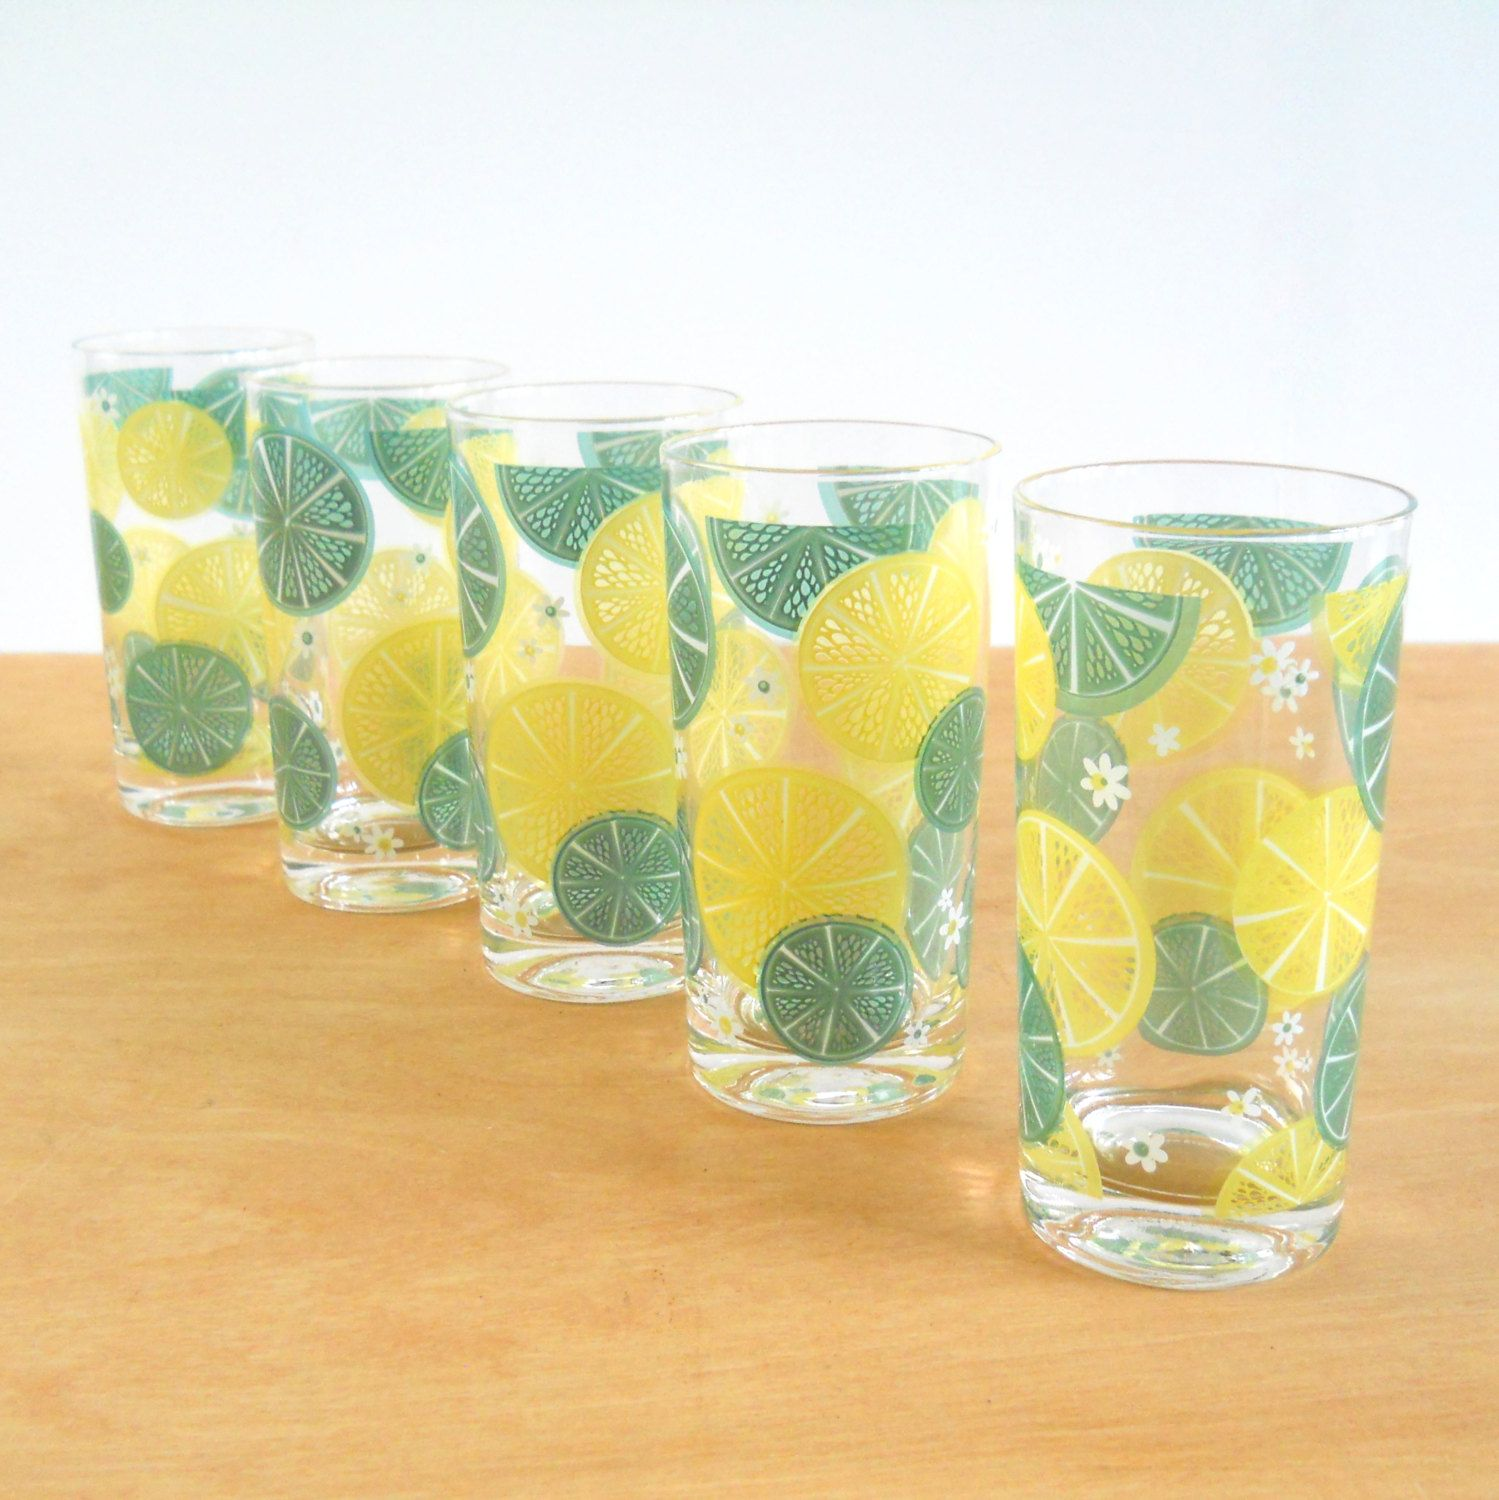 Vintage Tumblers Drinking Glasses Lemon Lime Fruit Slices Etsy Drinking Glasses Stemless Wine Glass Lemon Lime